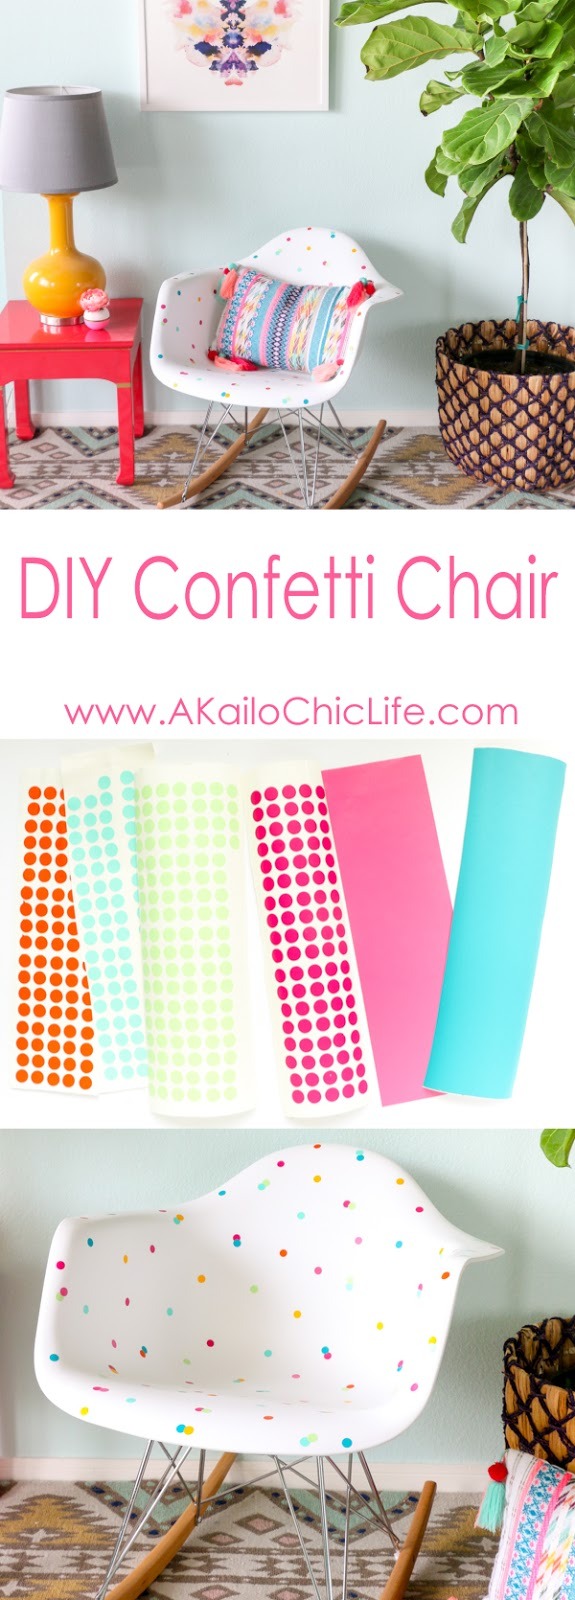 DIY Confetti Chair using A Silhouette Cameo Vinyl Cutter and temporary adhesive vinyl - DIY Project - Craft Project - Weekend DIY - Quick DIY - Home Decor Project